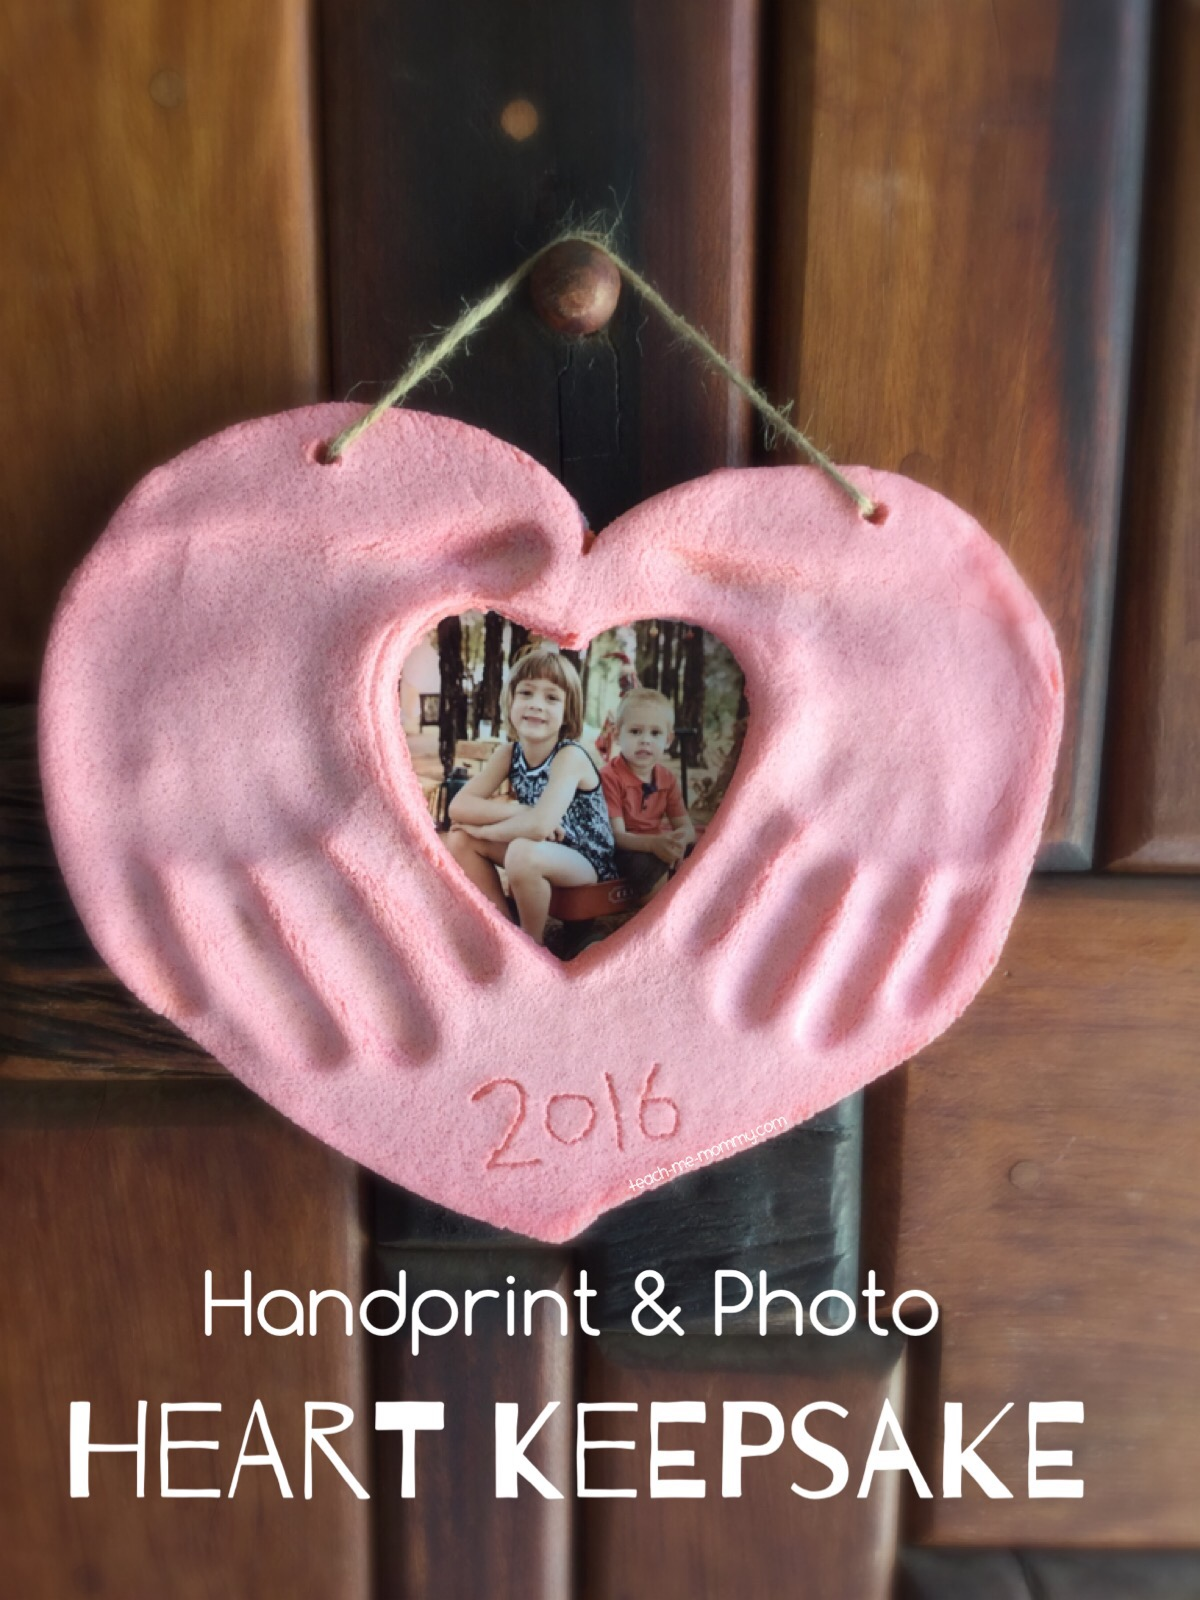 handprint & photo heart keepsake